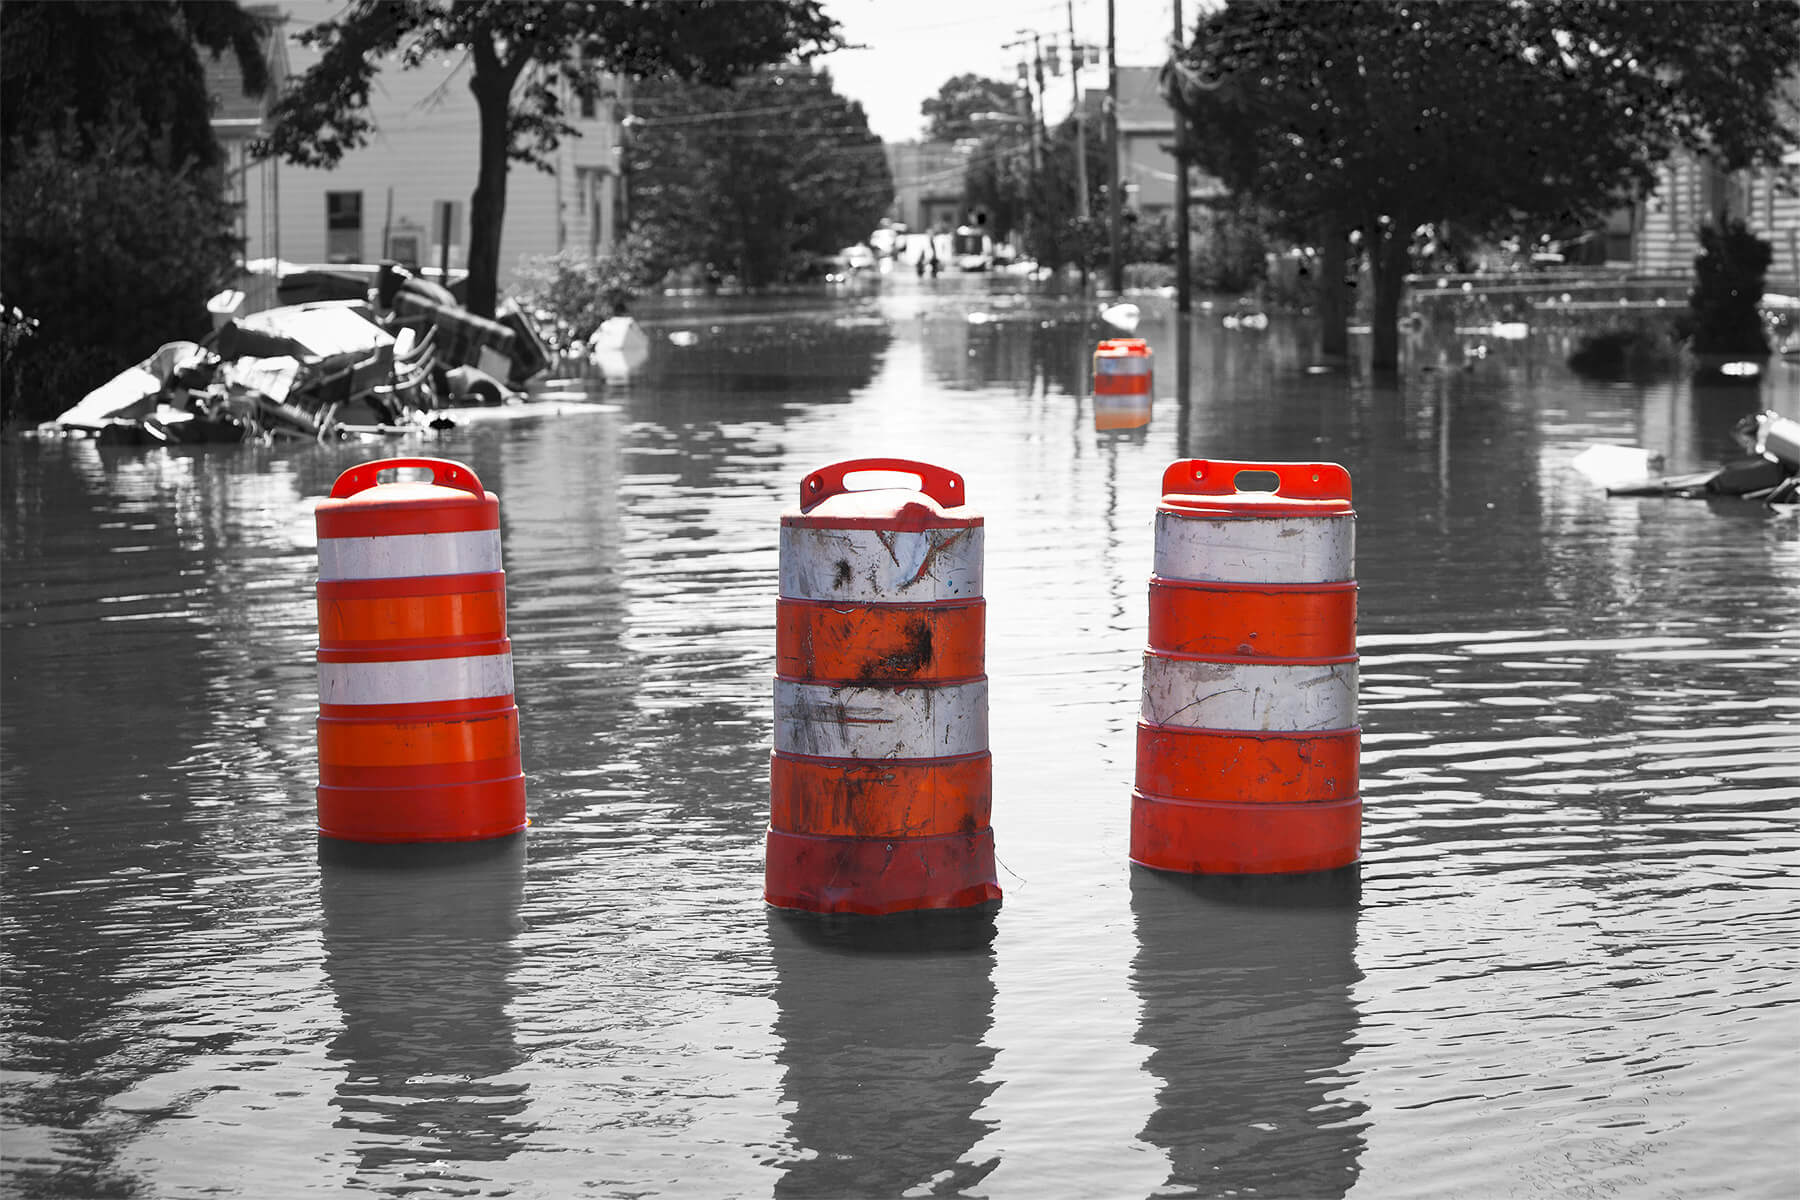 Flooded Road & barricades